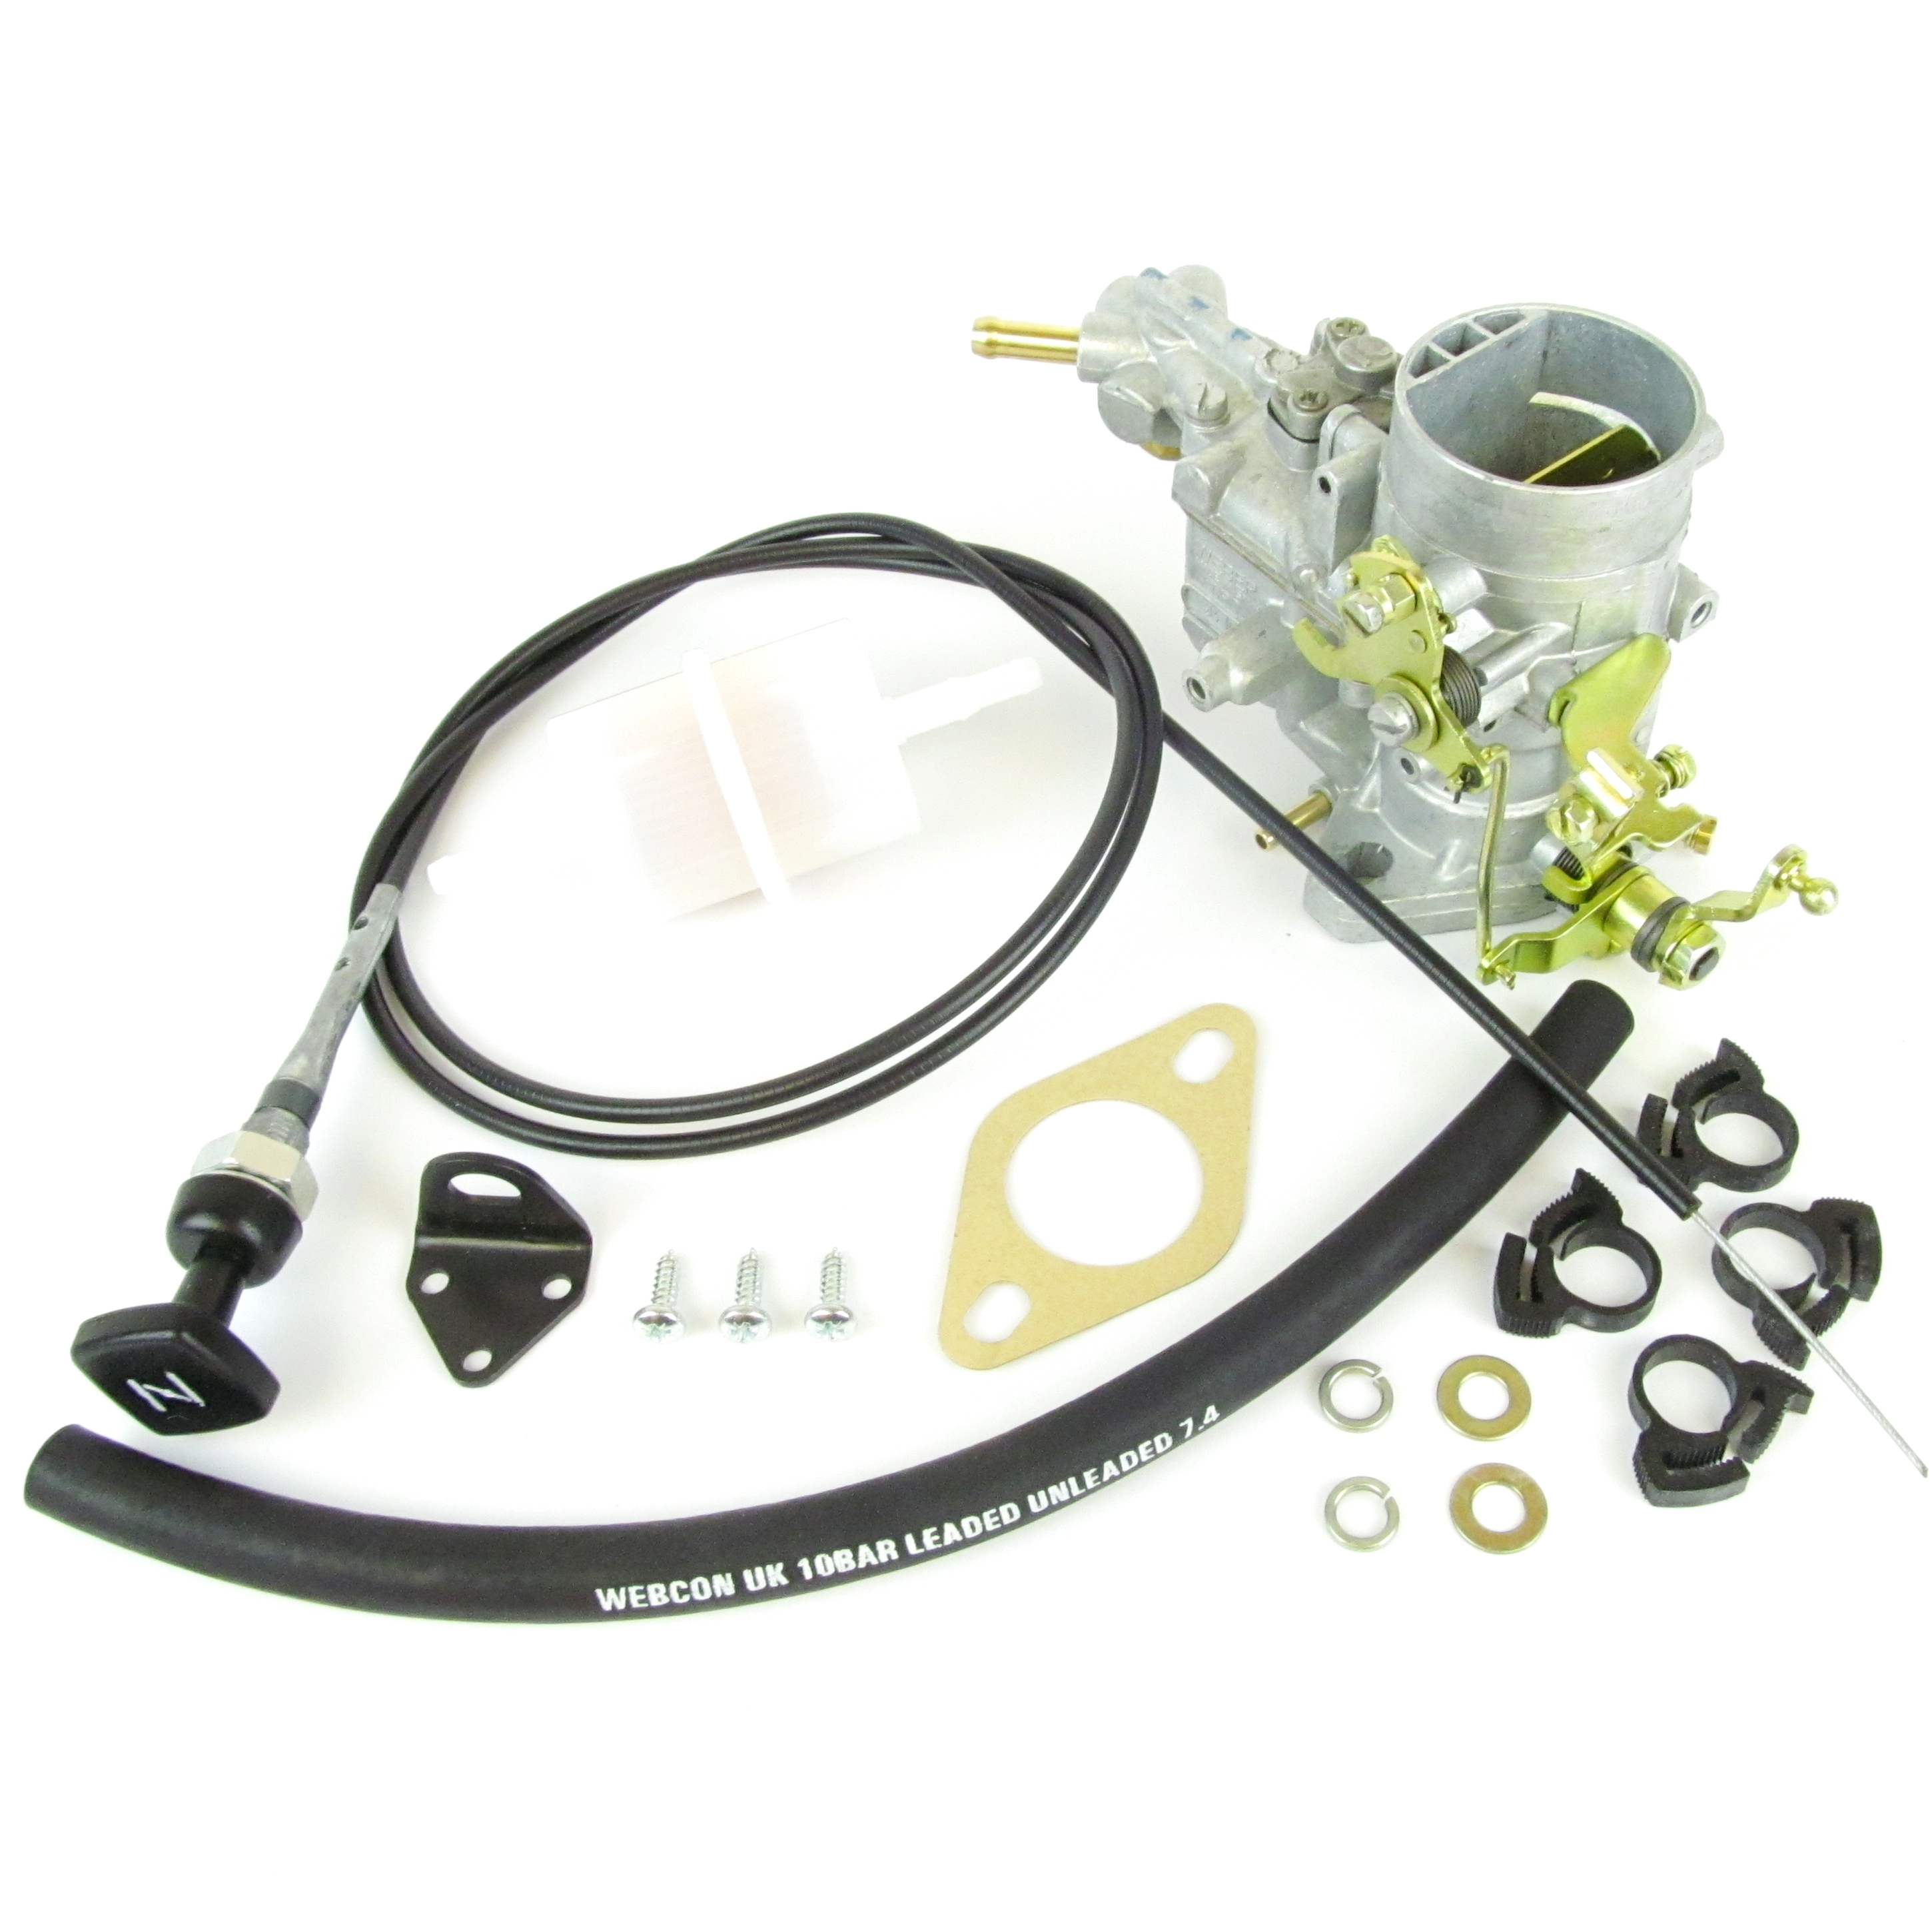 WEBER 34 ICH CARBURETTOR / CARB UPGRADE KIT SAAB 95 / 96 V4 1498CC FORD TAUNUS ENGINE